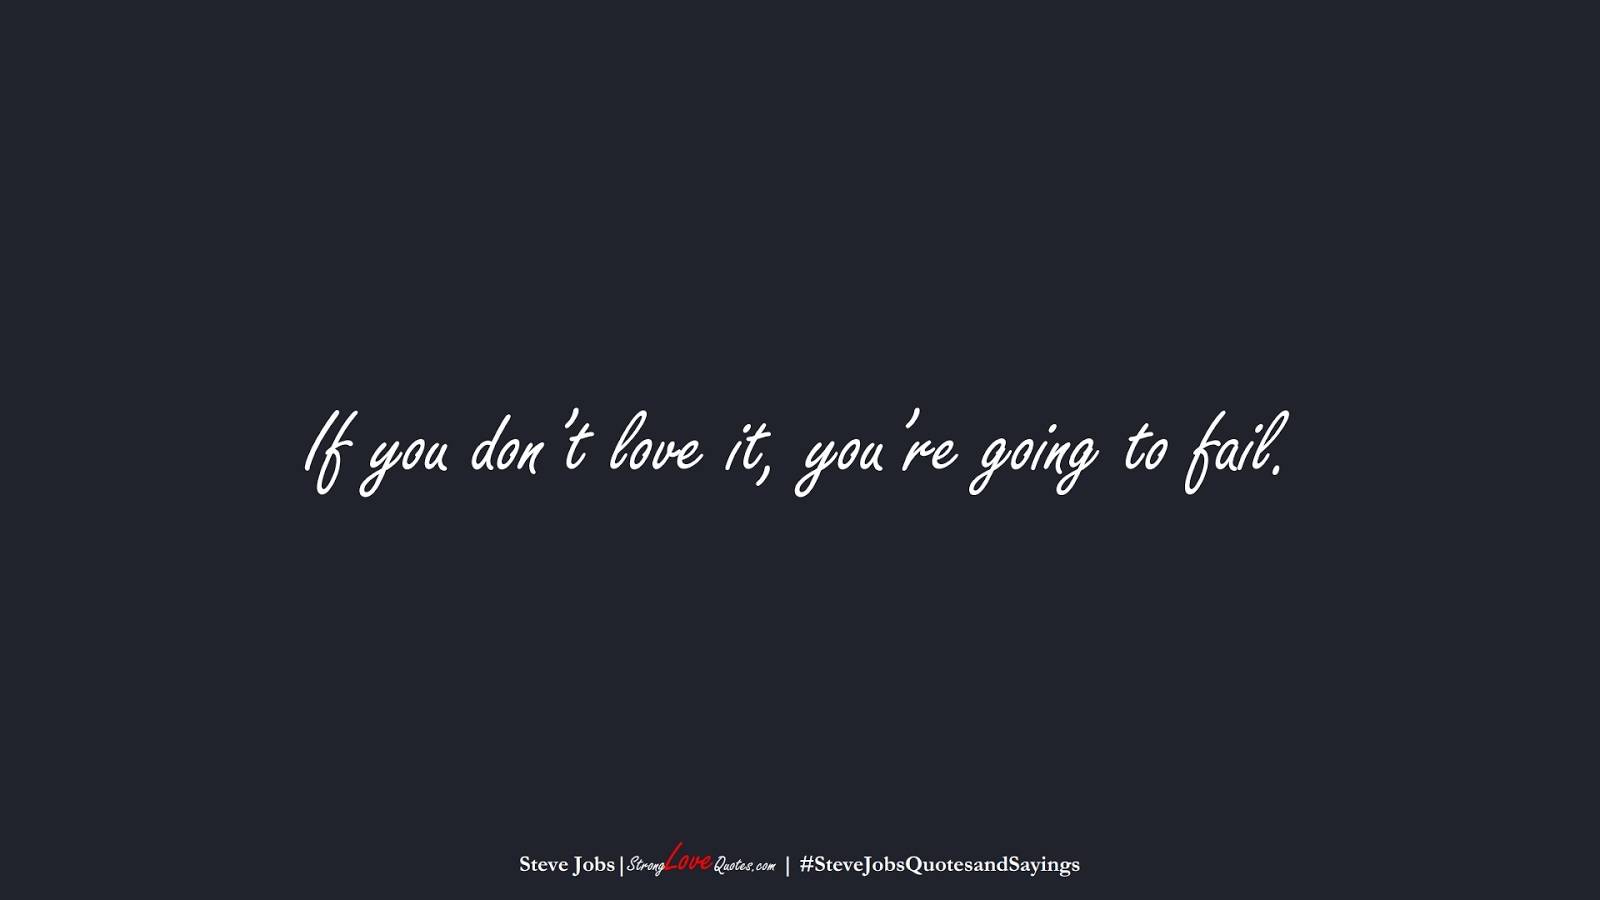 If you don't love it, you're going to fail. (Steve Jobs);  #SteveJobsQuotesandSayings